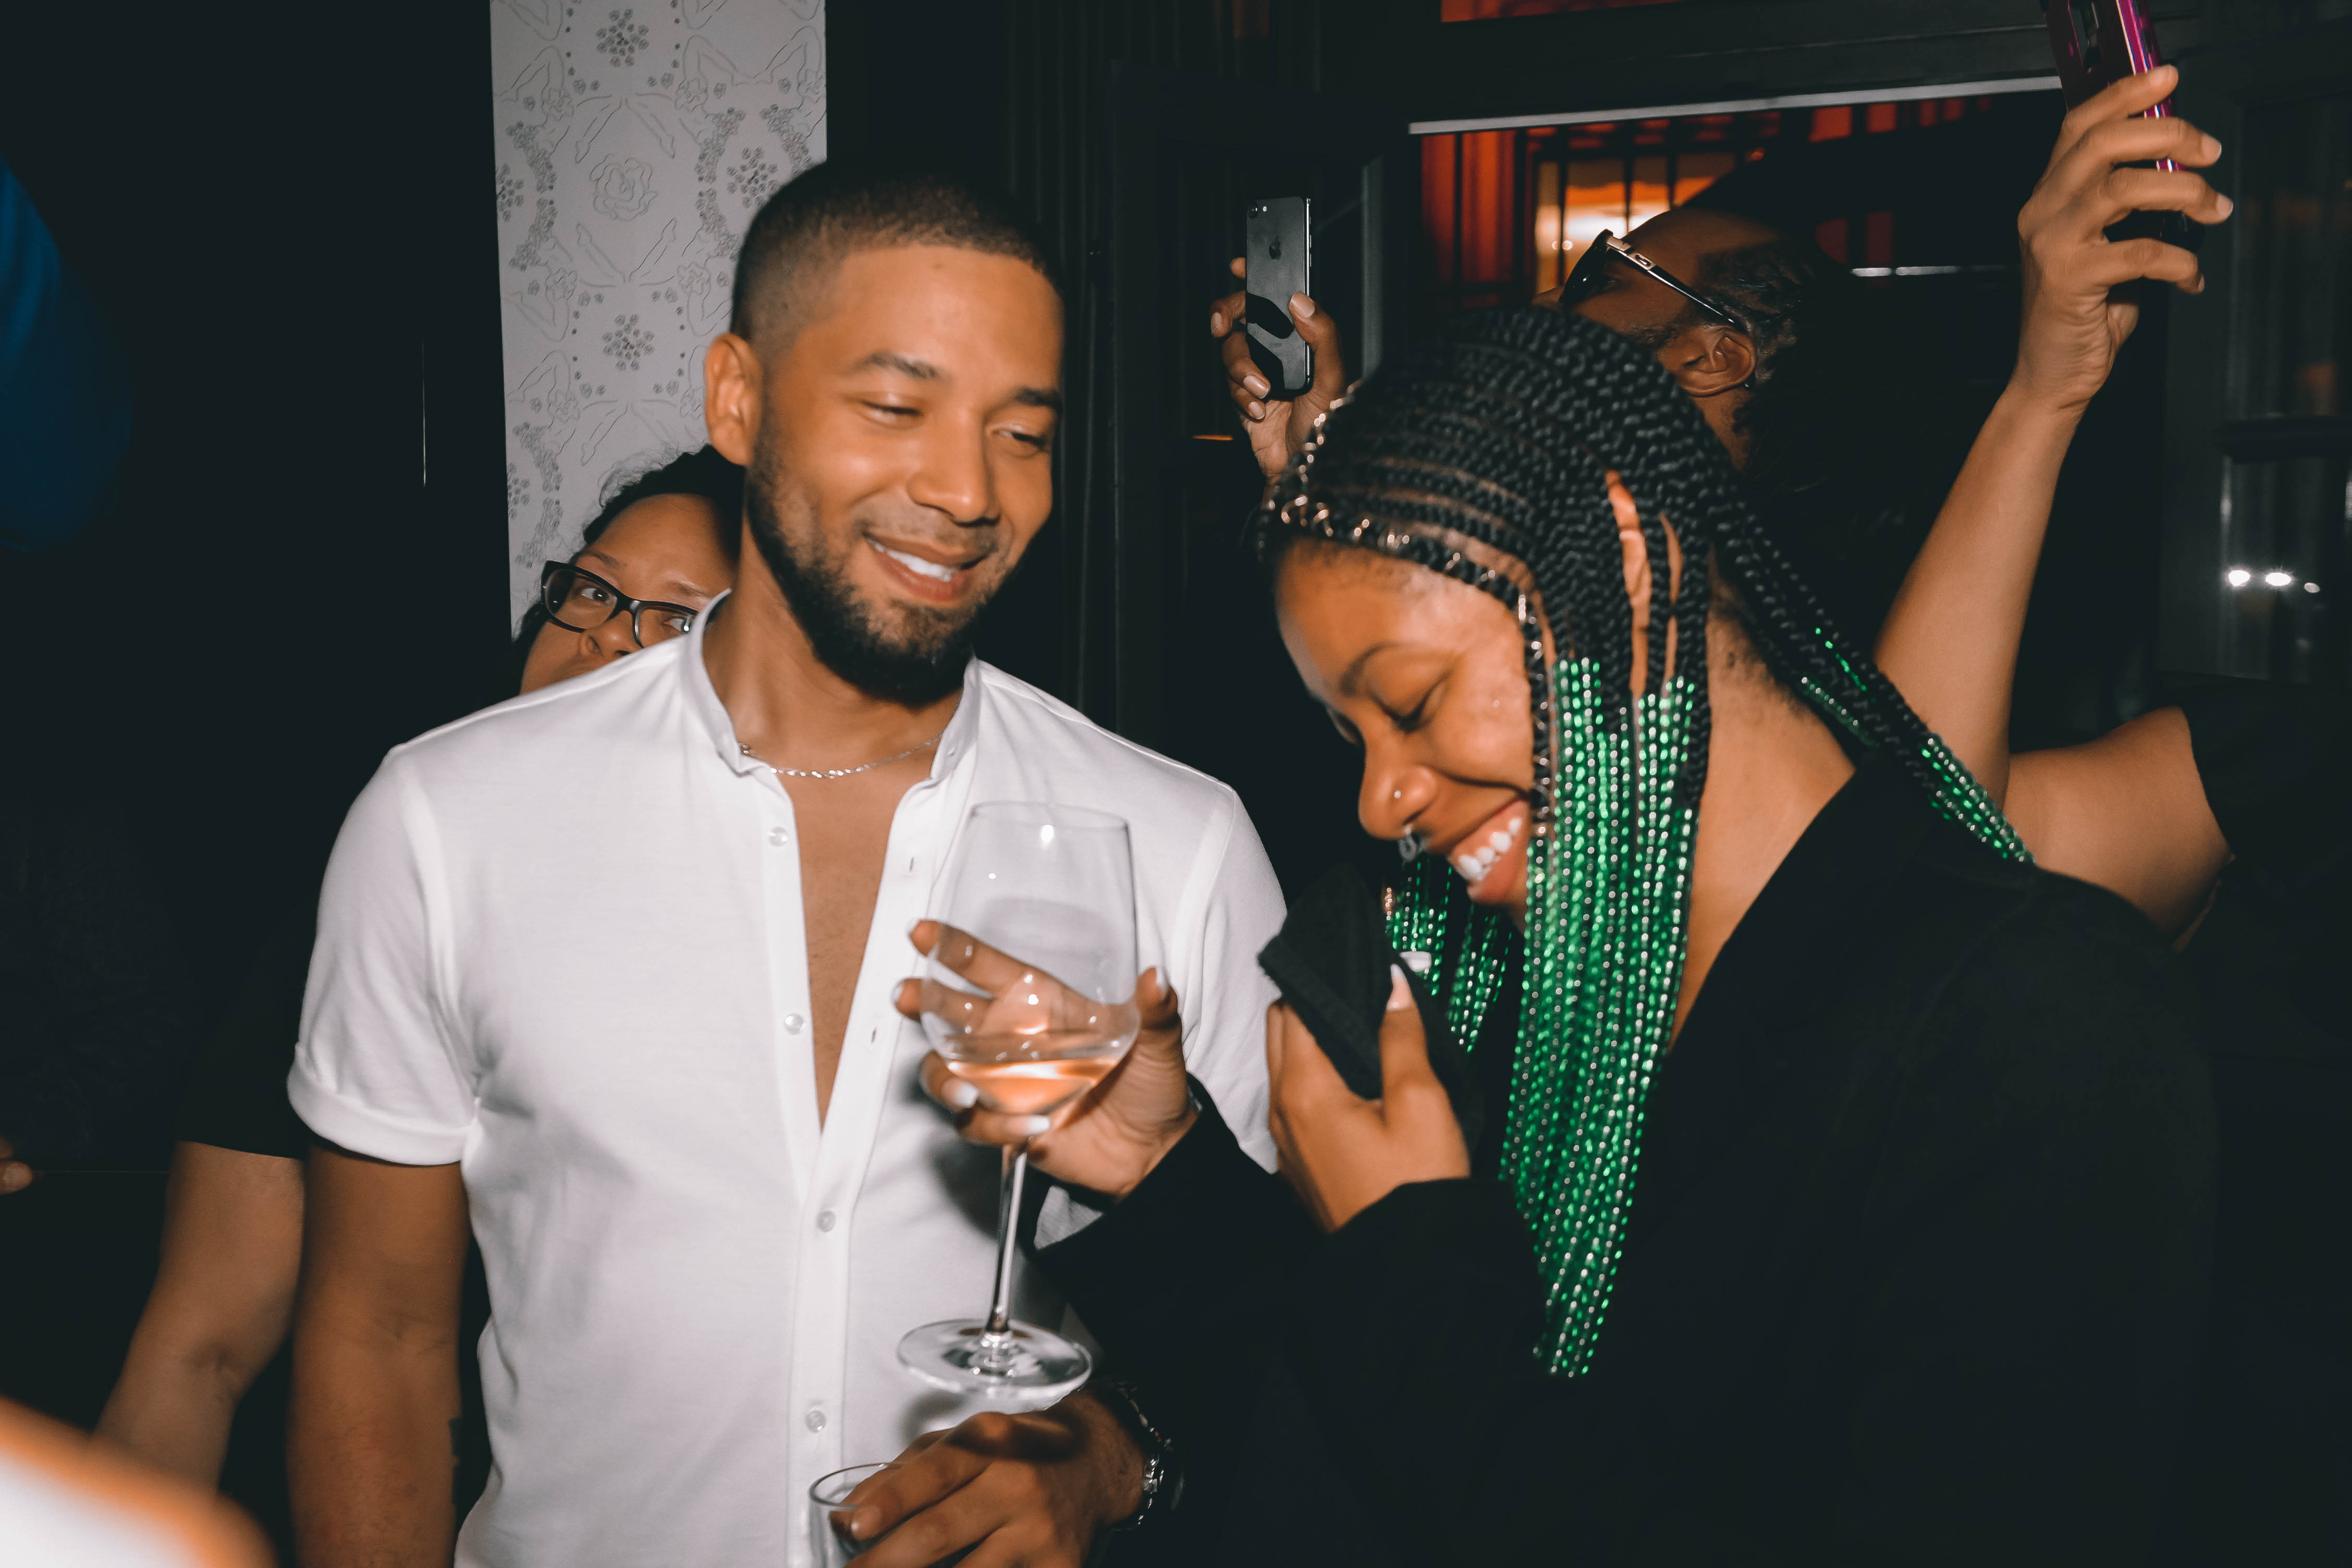 Spirit & Flesh Magazine cover event, Jussie Smollett & April Qualls by Chuck Marcus